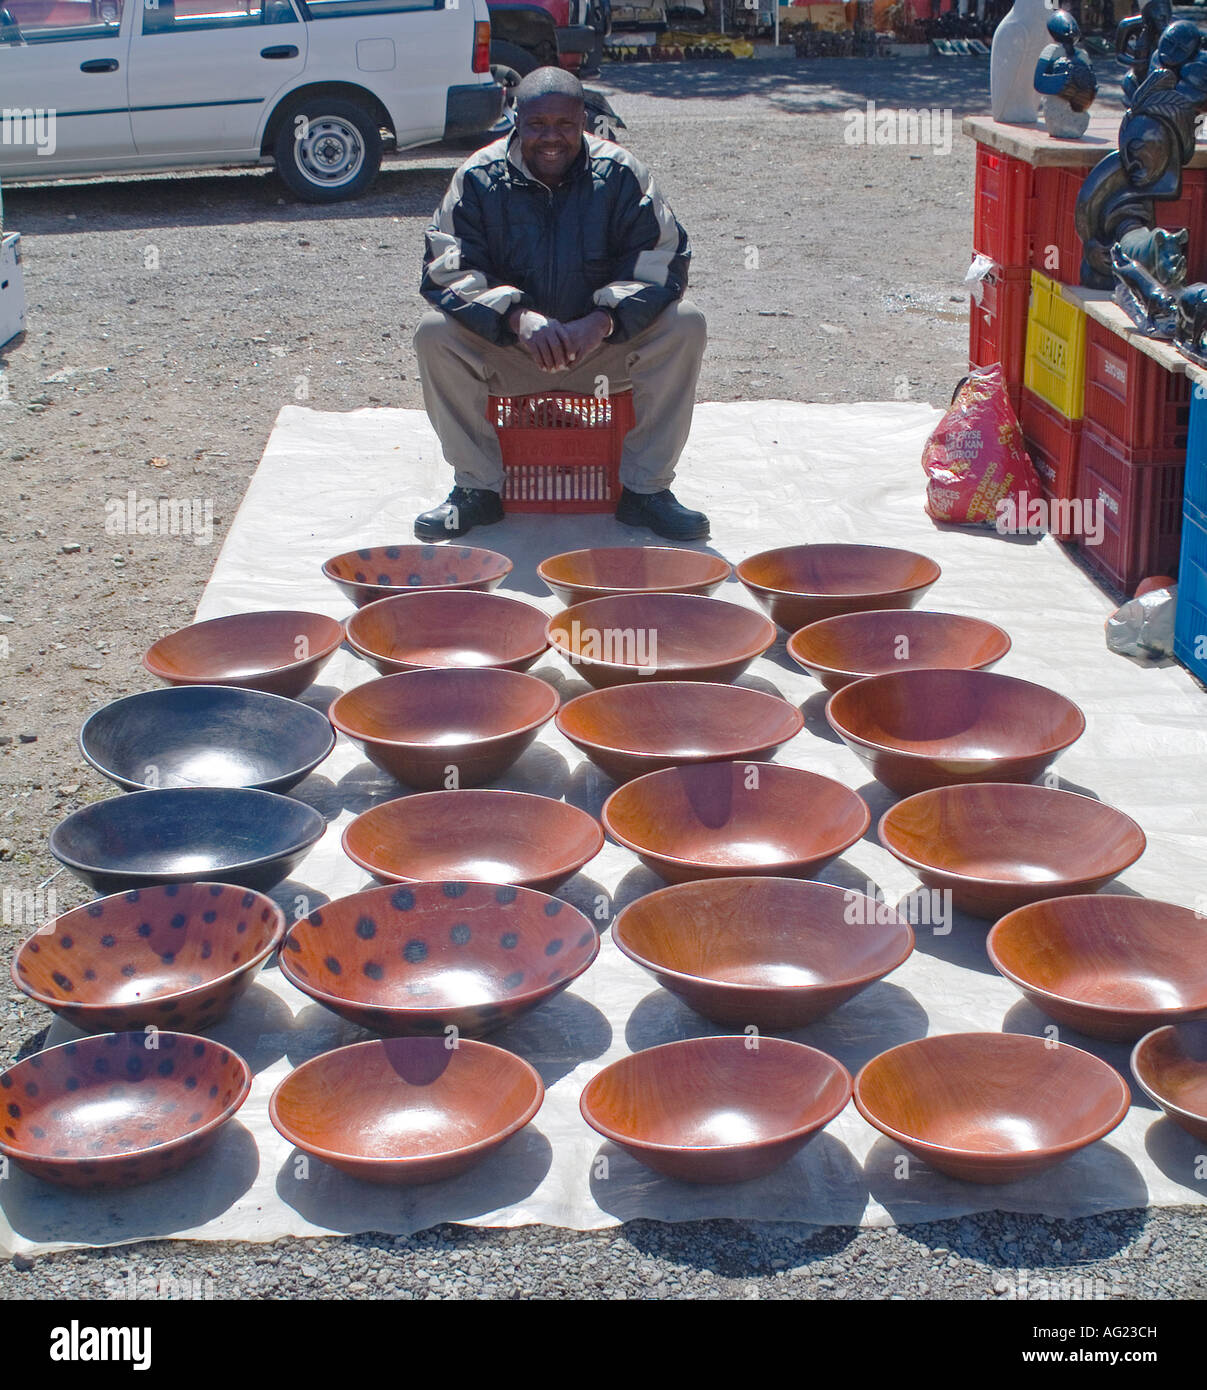 African Man Selling Hand Carved Wooden Bowls At A Flea Market In